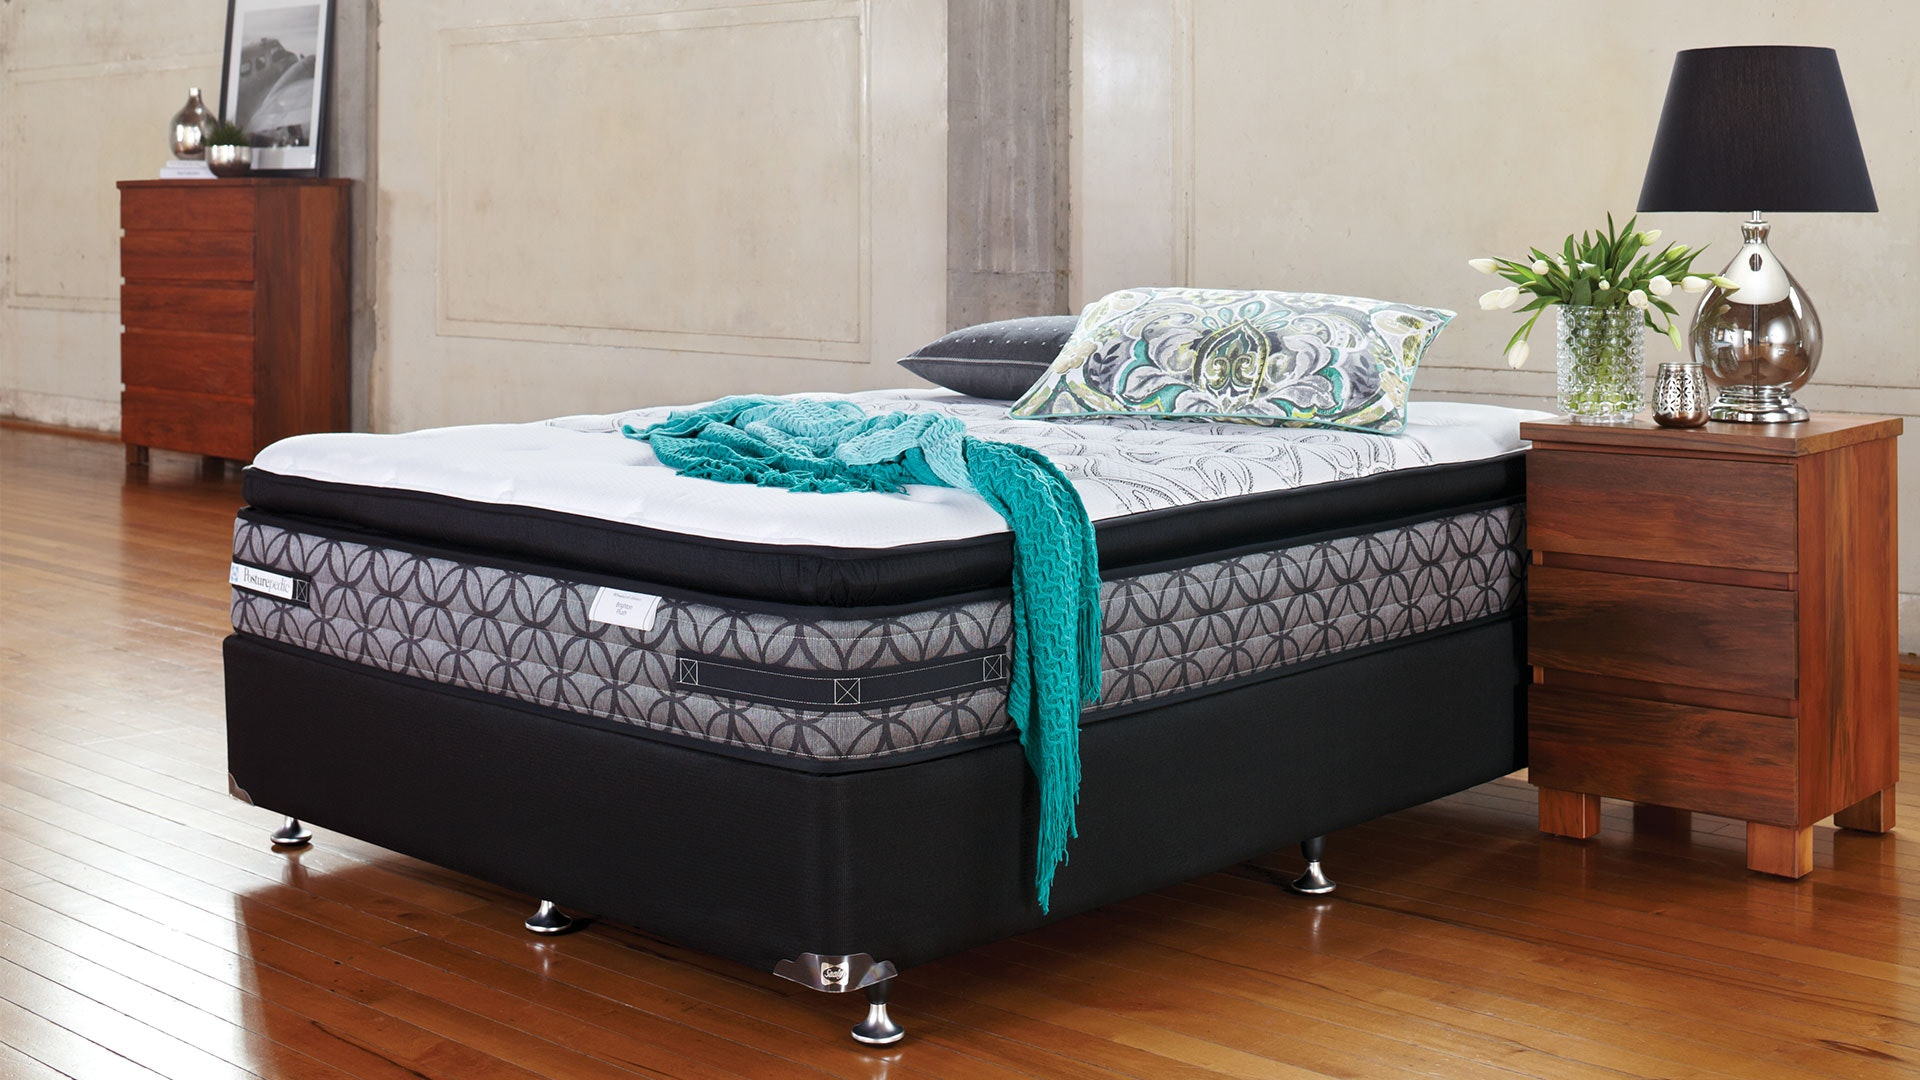 Brighton Plush Double Bed by Sealy Posturepedic